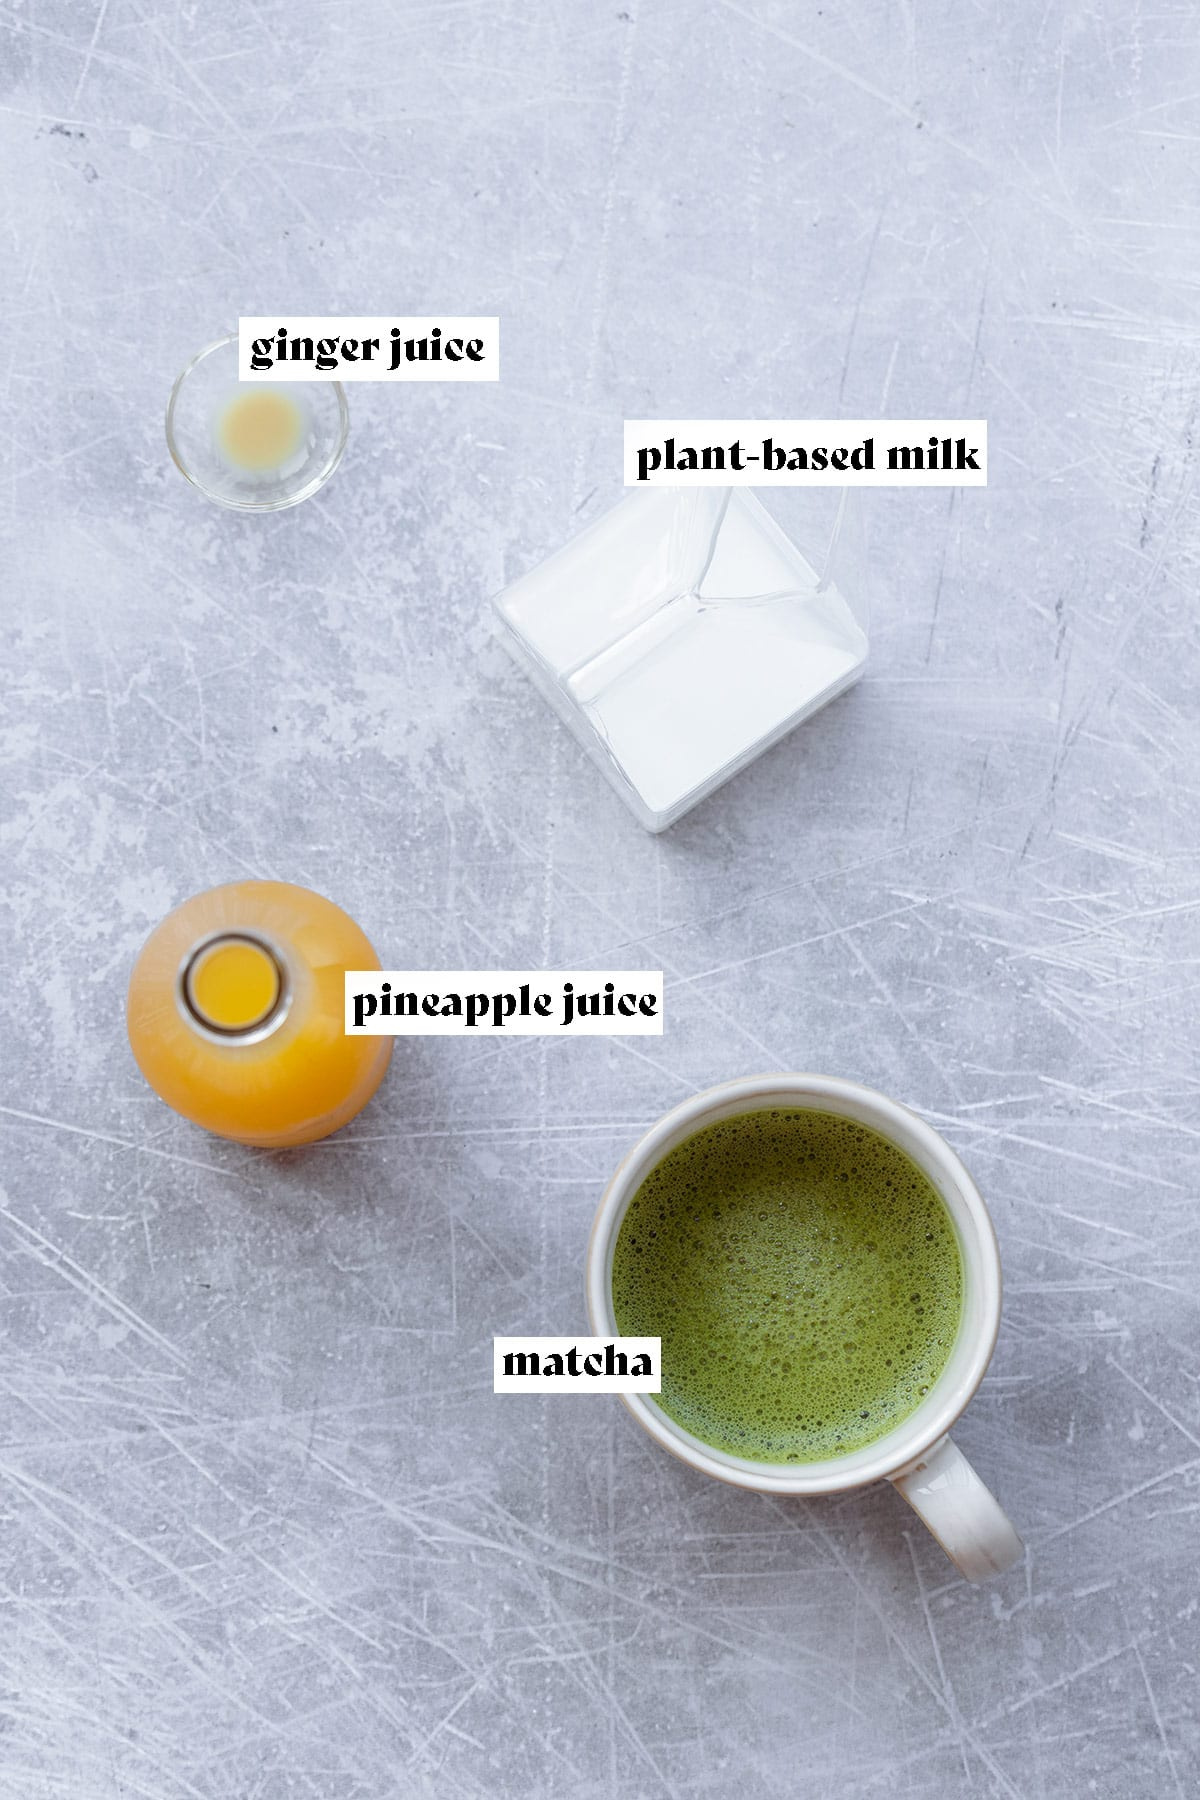 The four ingredients for Iced Pineapple Matcha Drink laid out on a light metal background.